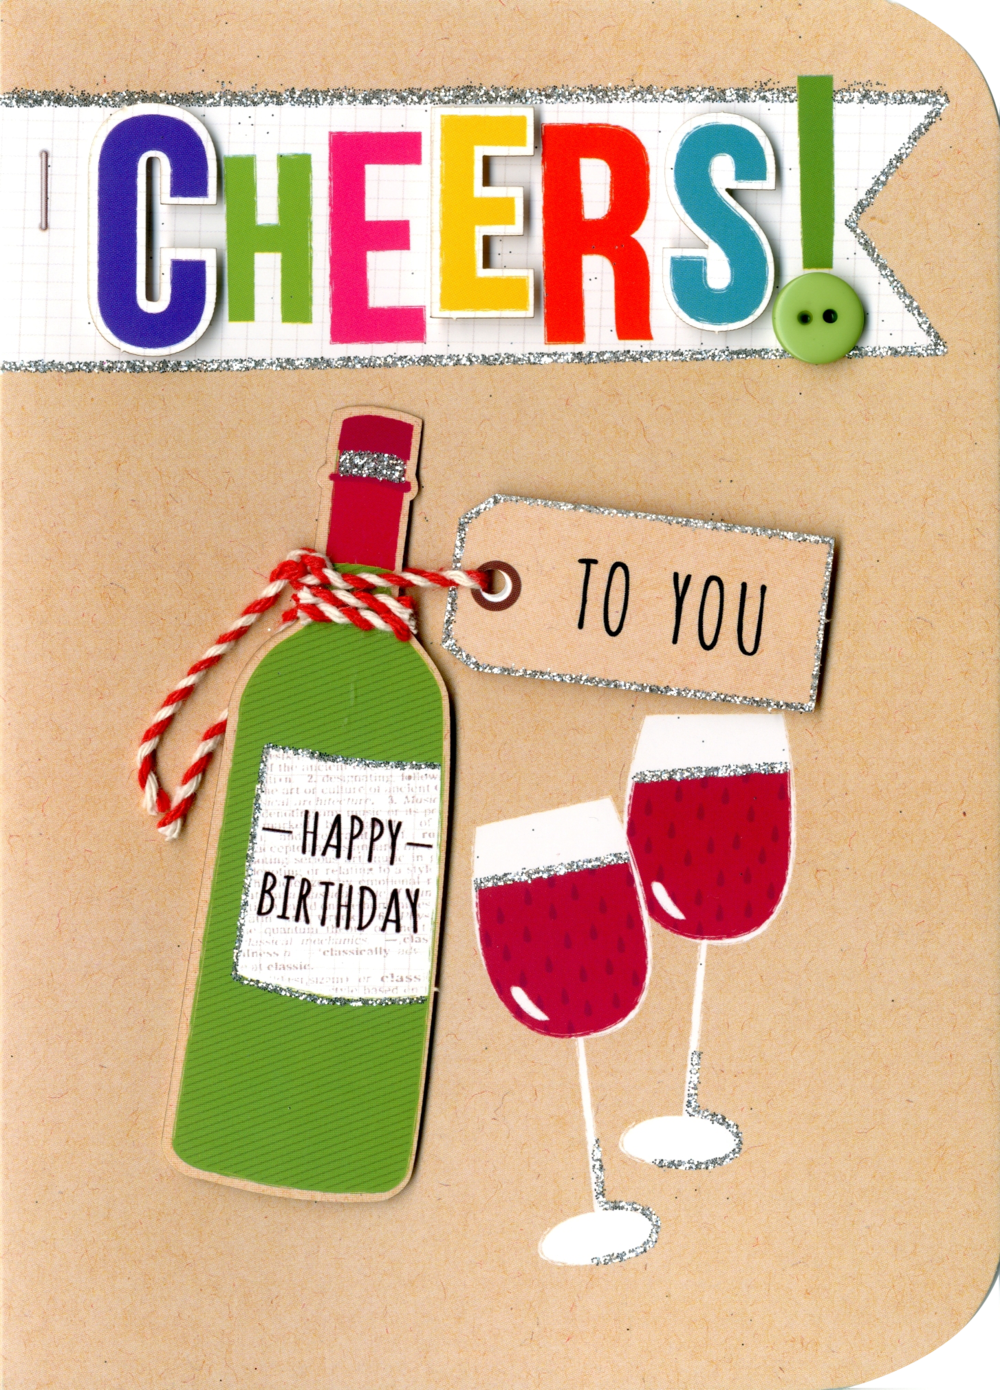 Cheers To You Birthday Embellished Greeting Card